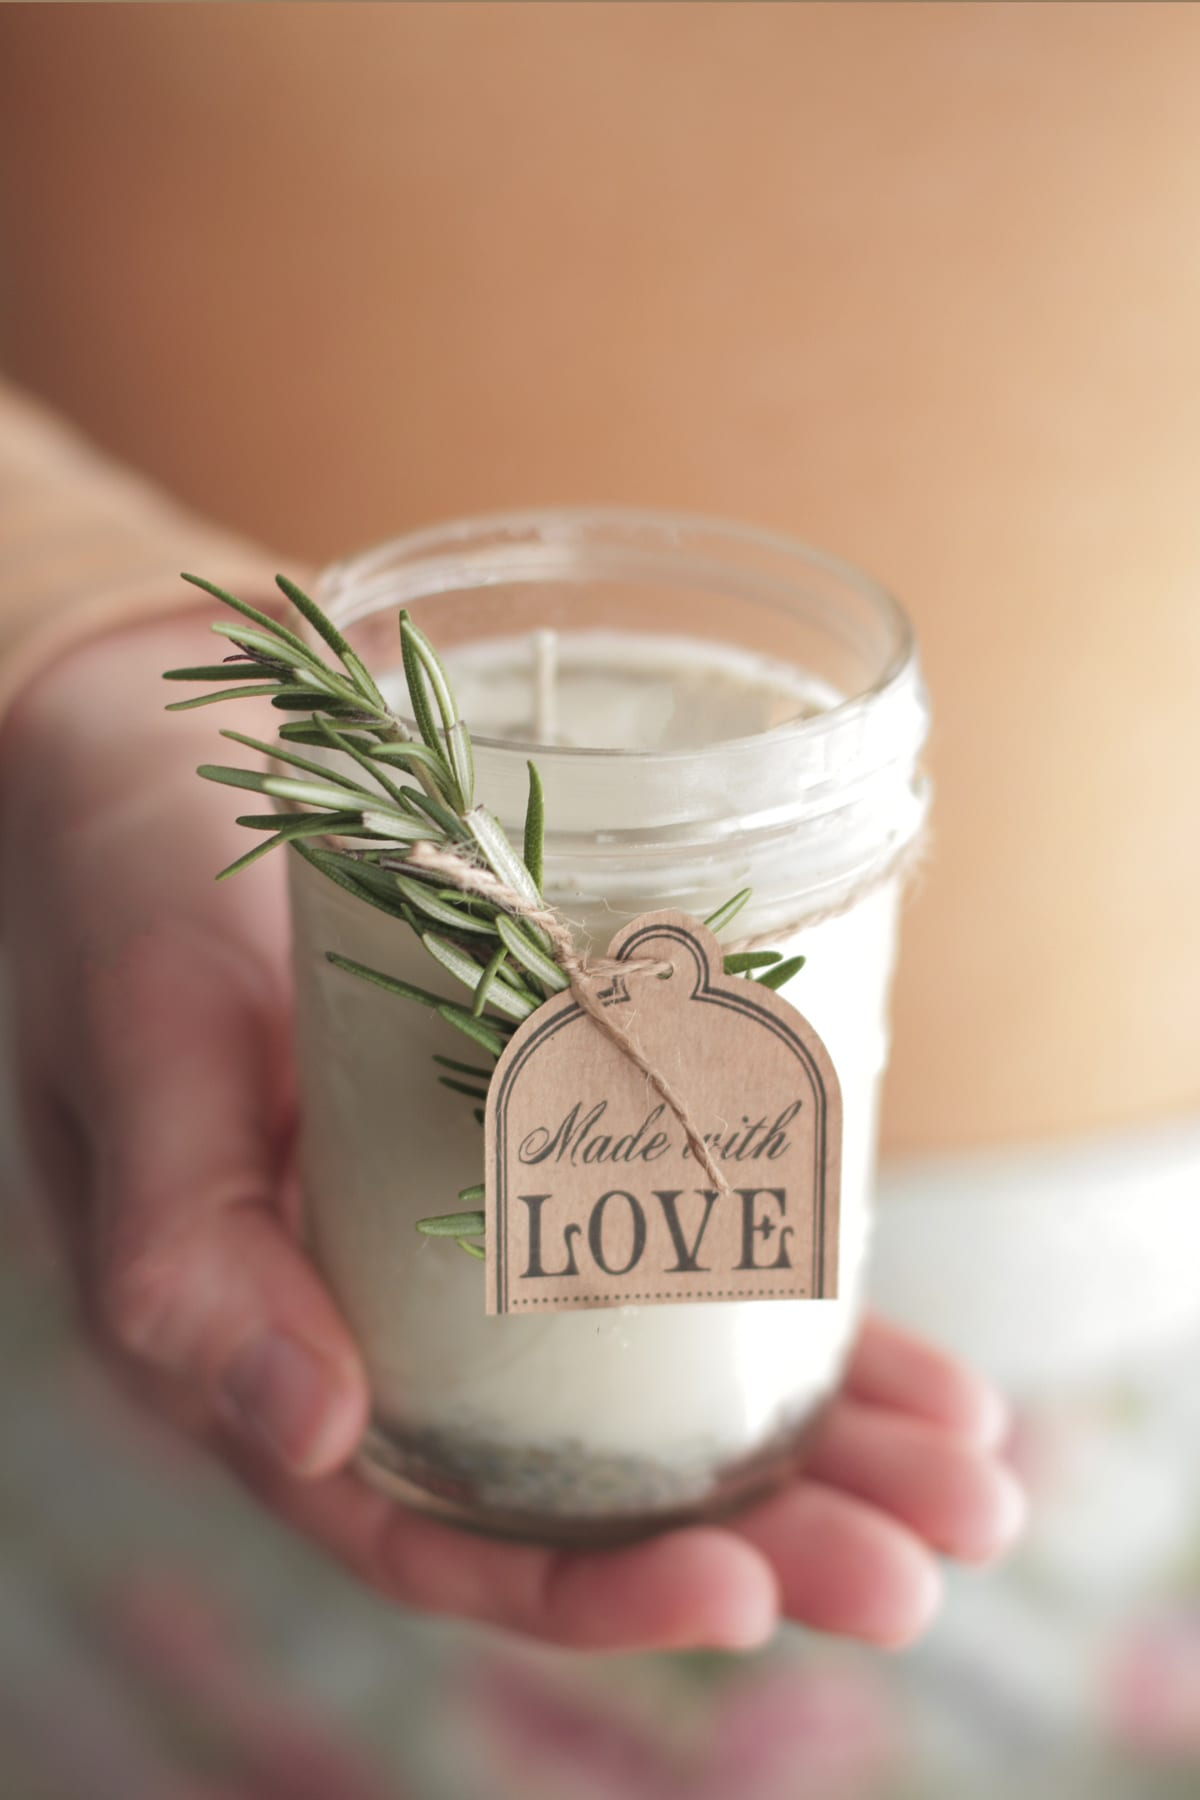 Homemade rosemary and lavender candles make the perfect favor for your guests!